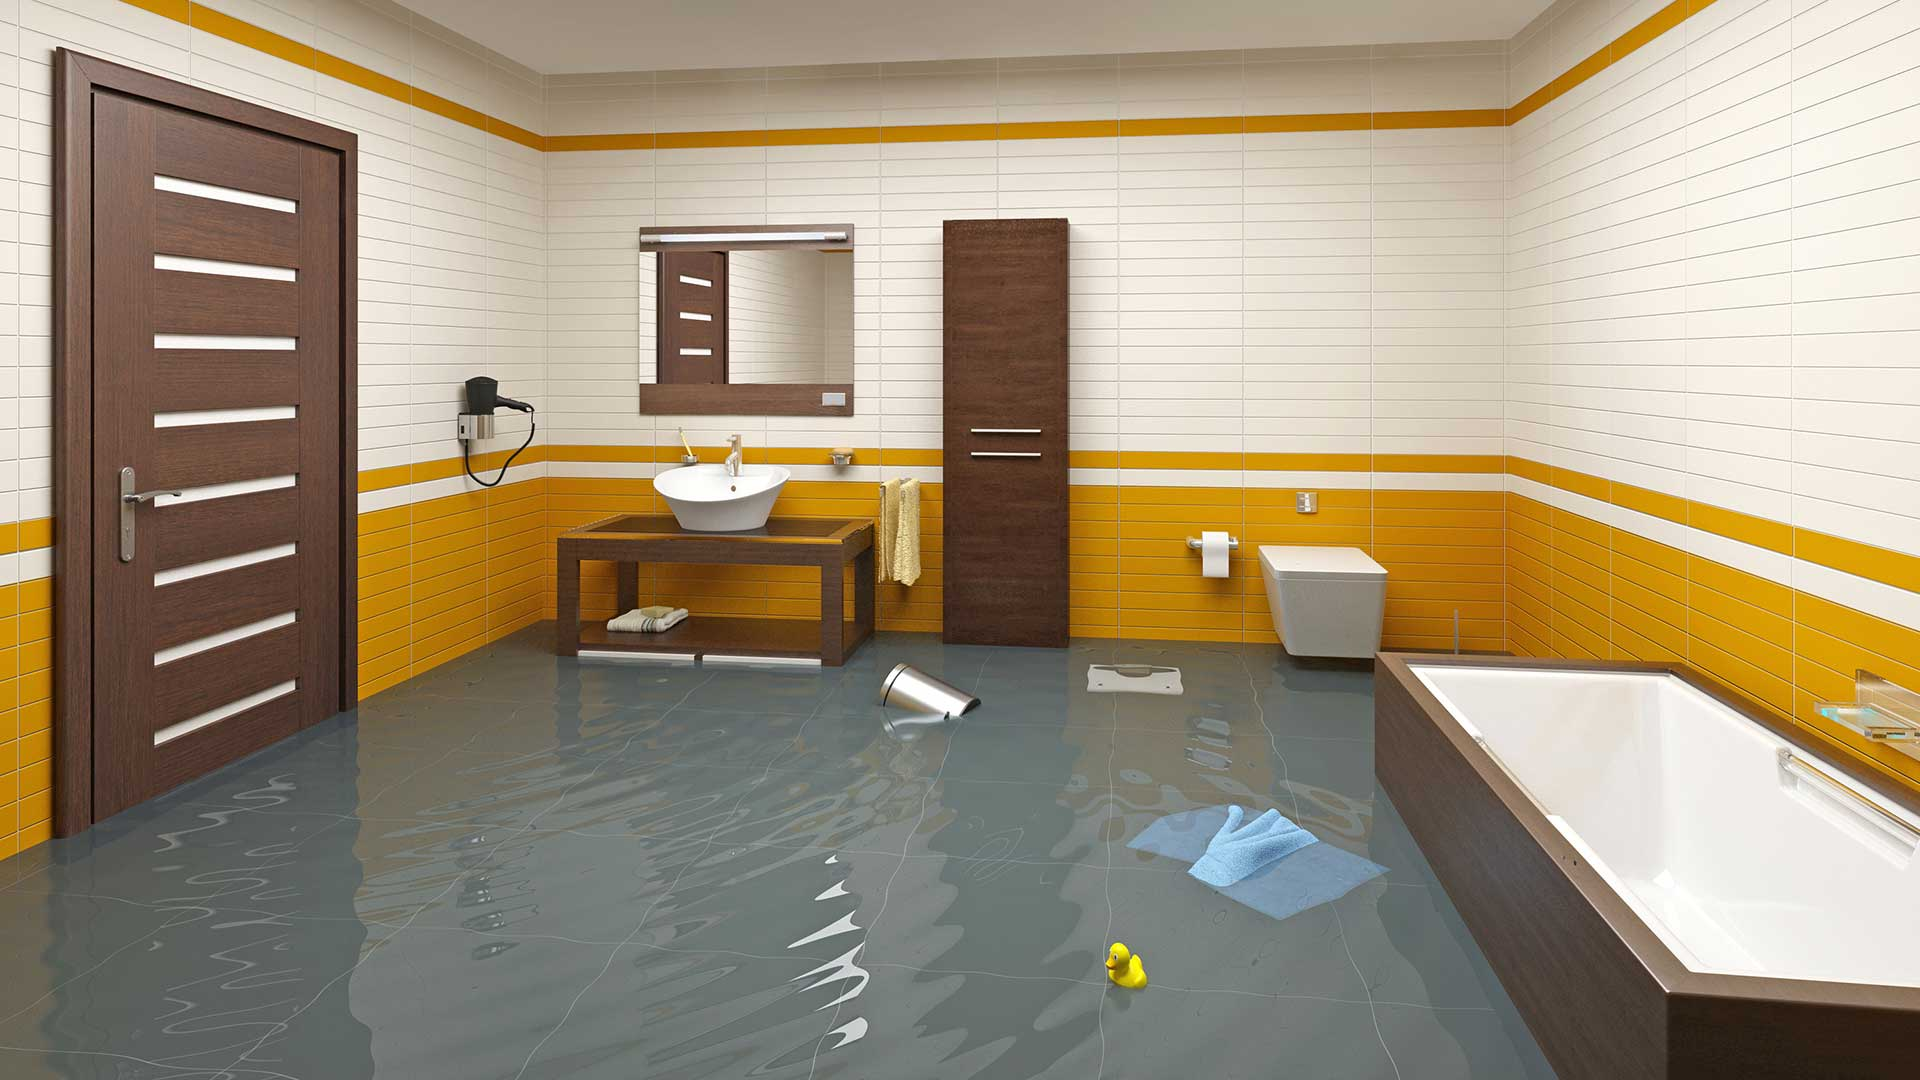 Steps to Take When Your Bathroom Floods